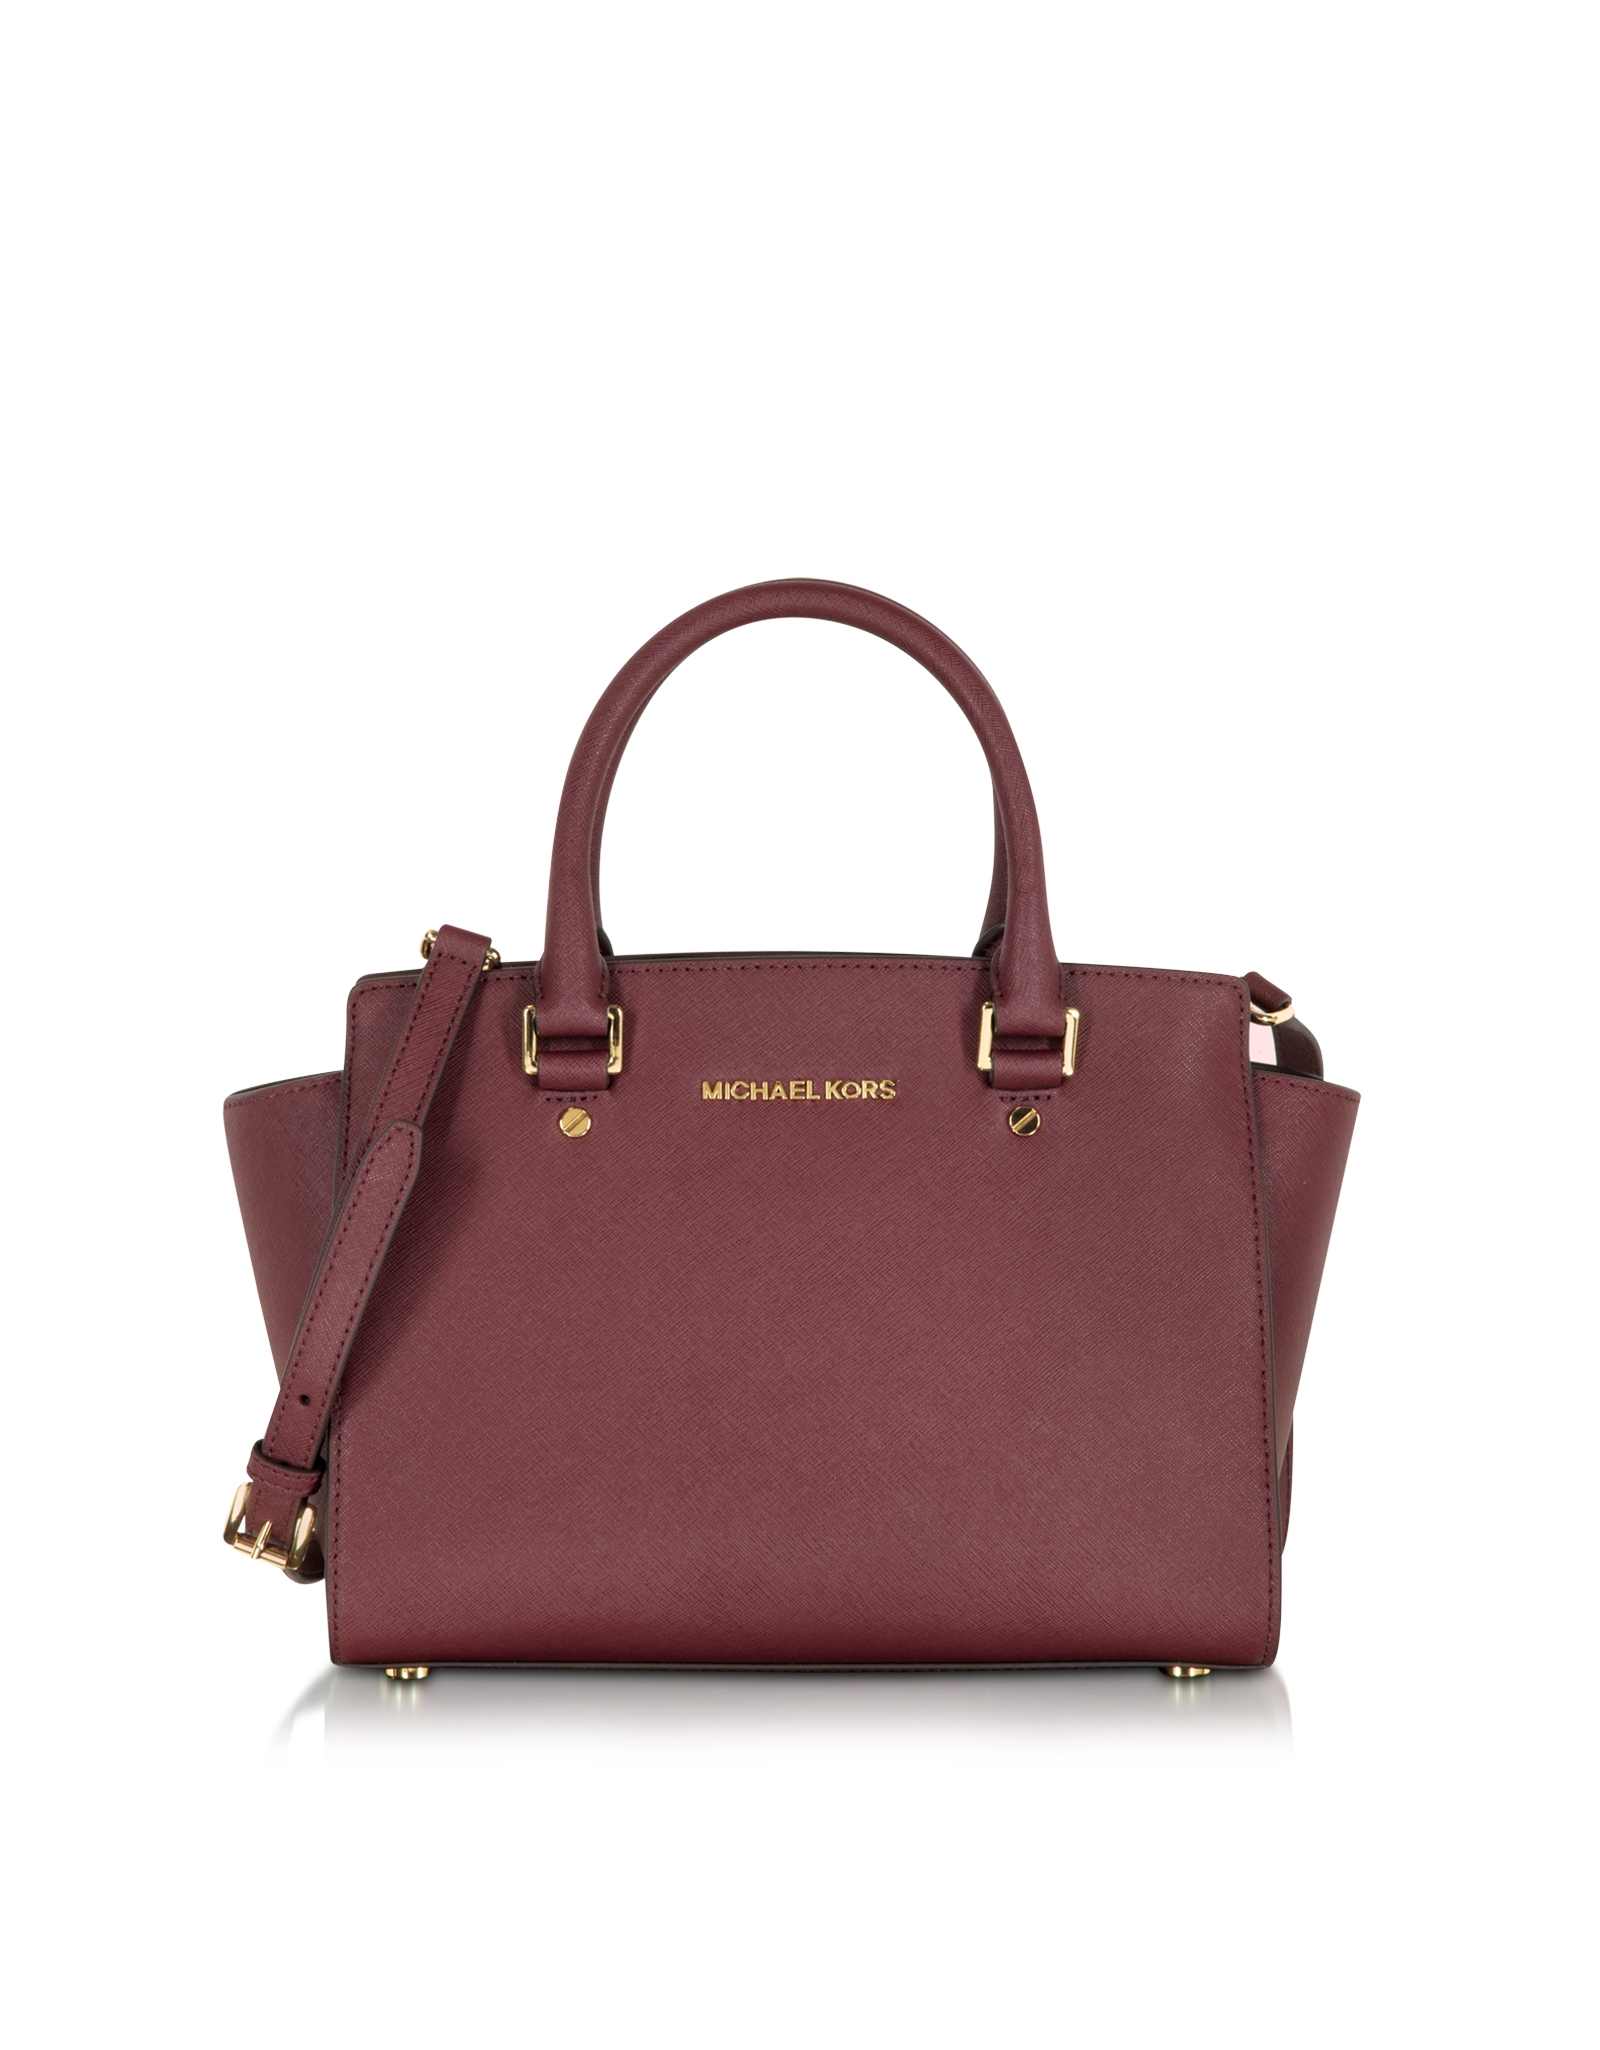 saffiano leder michael kors michael kors selma saffiano leather medium satchel in red michael. Black Bedroom Furniture Sets. Home Design Ideas